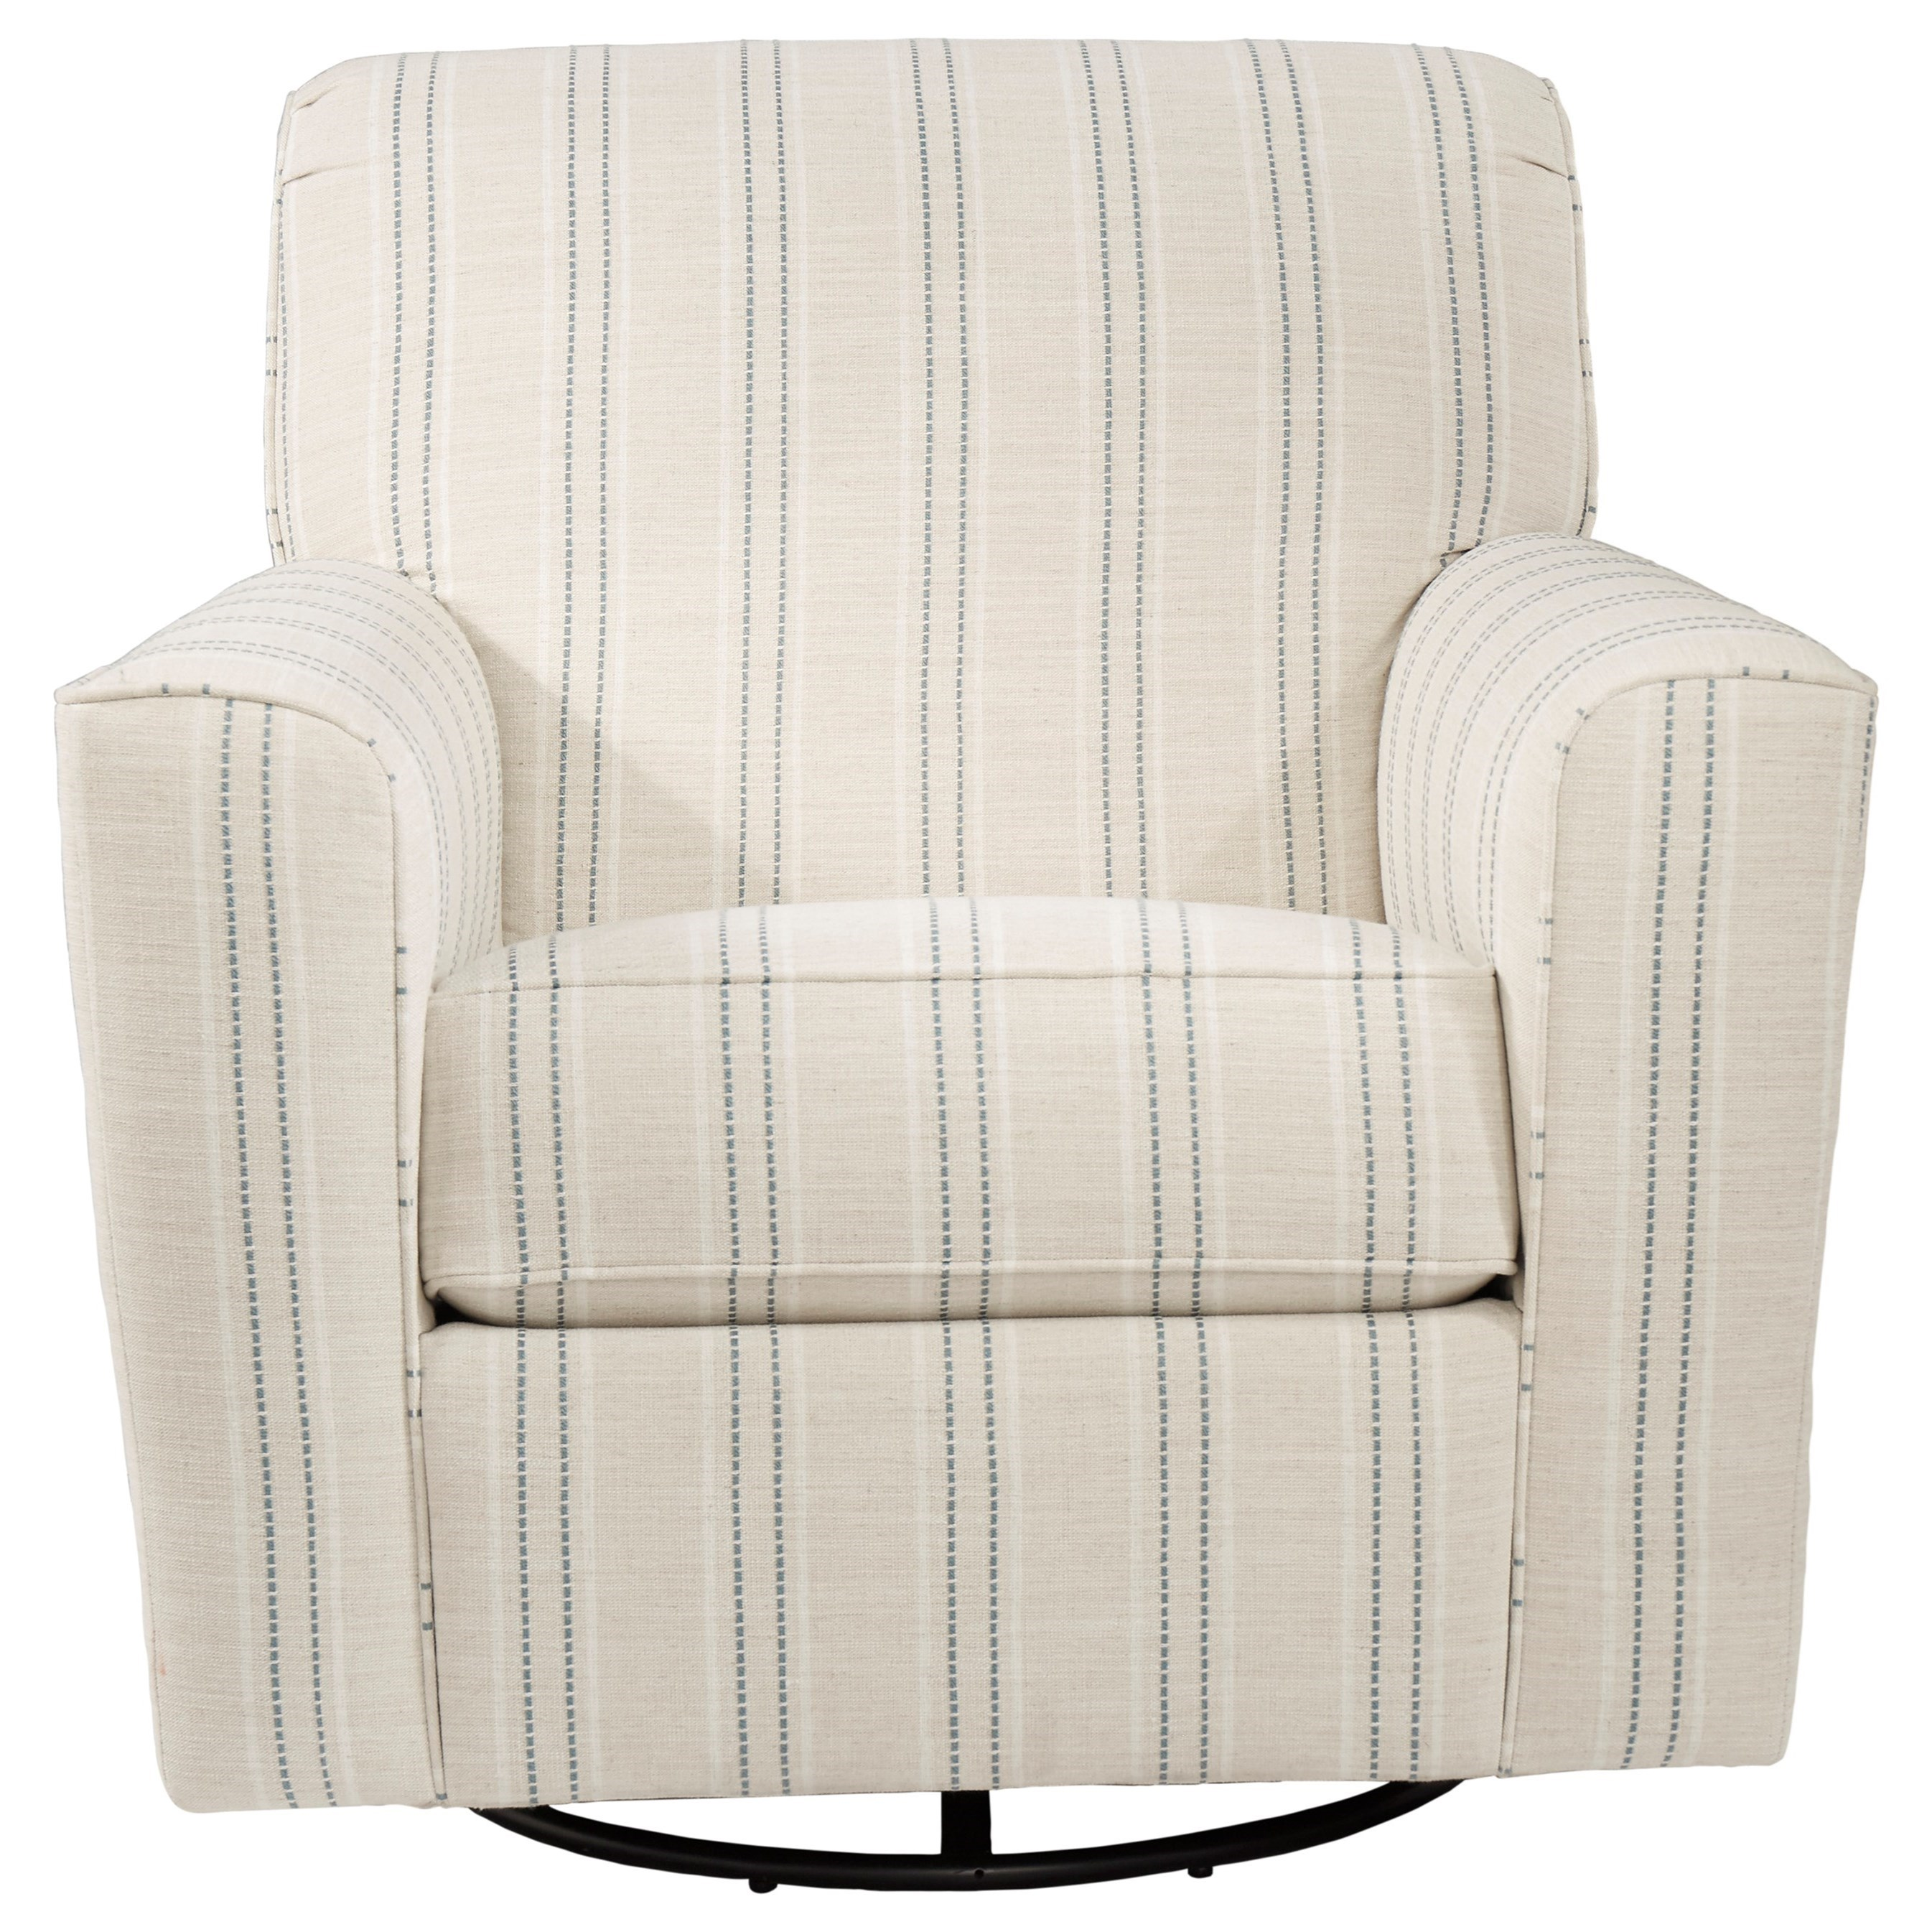 Alandari Swivel Glider Accent Chair by StyleLine at EFO Furniture Outlet